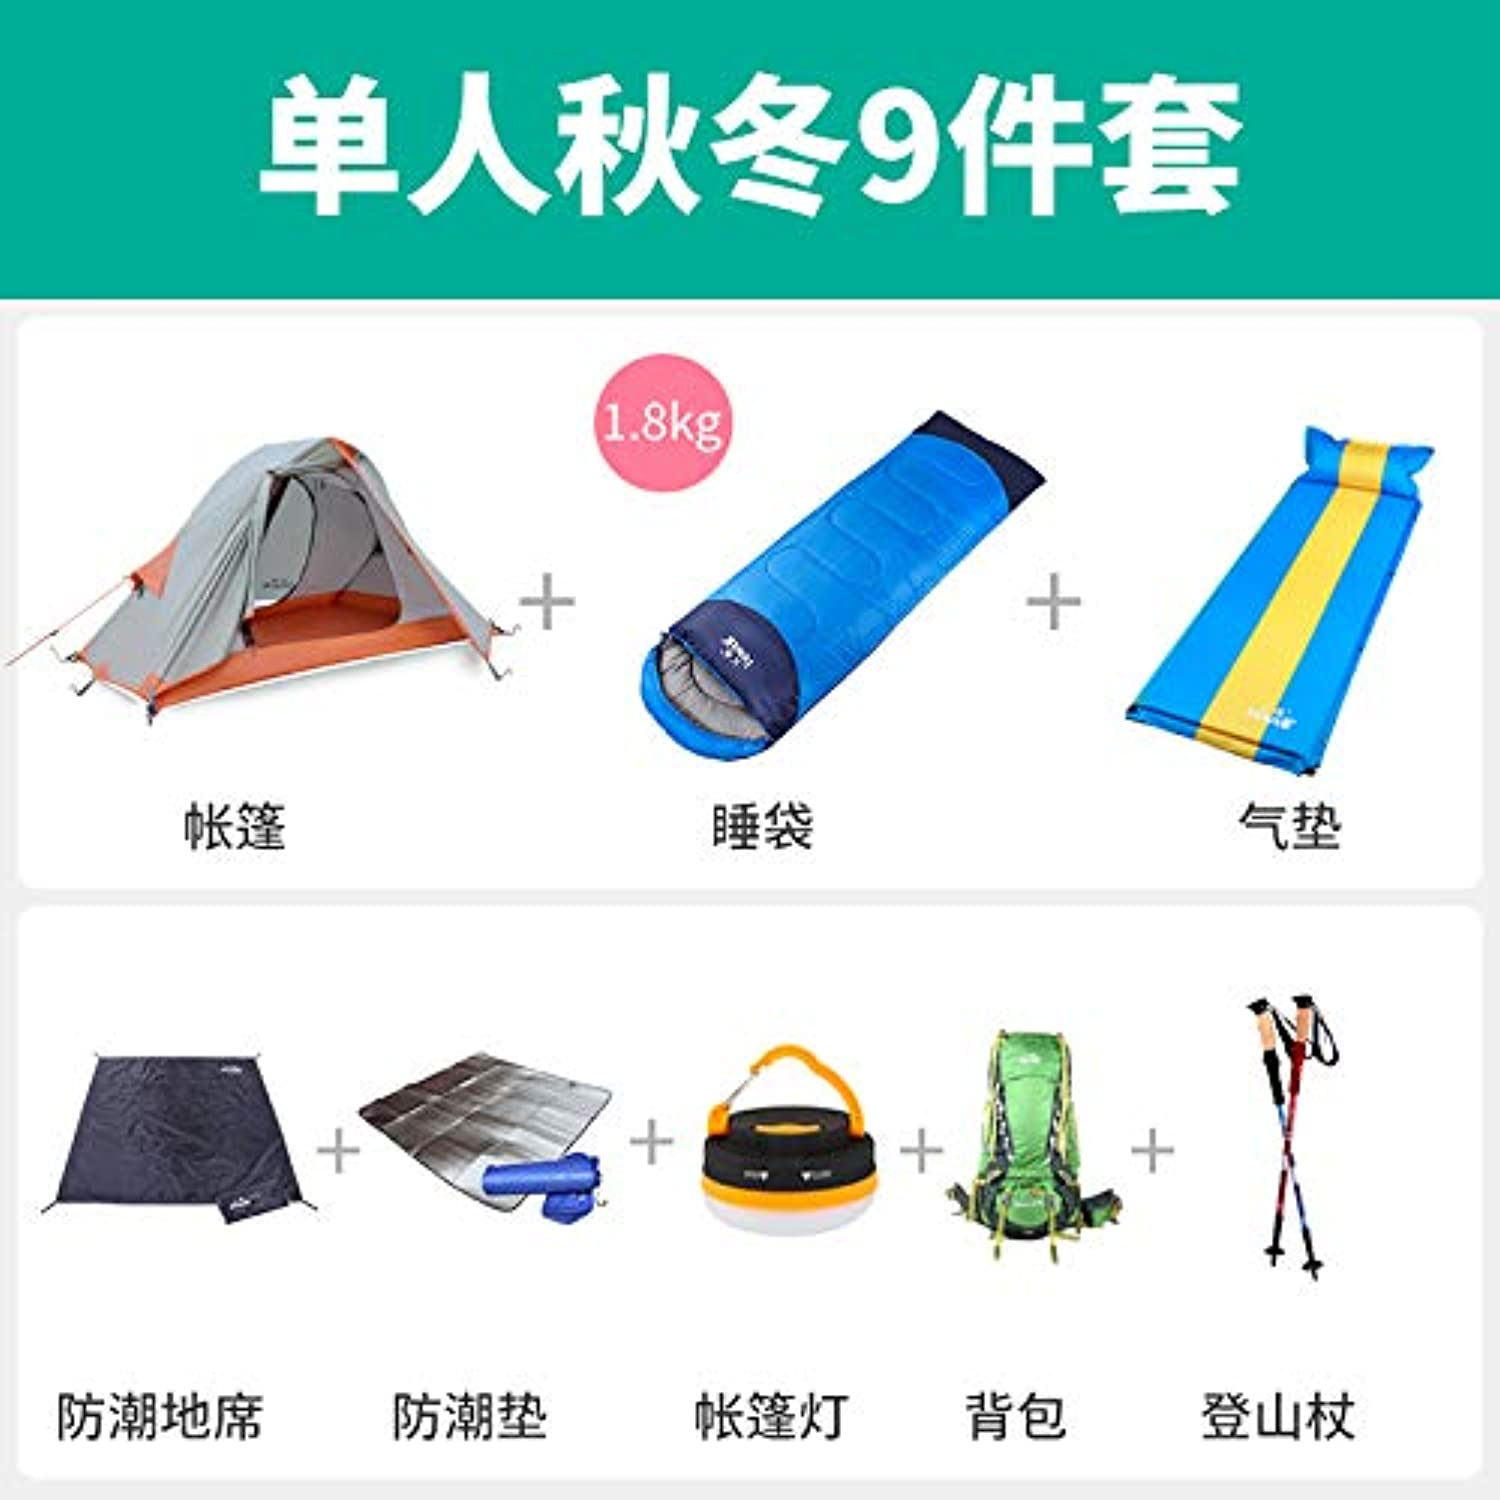 1 Person Tent Outdoor Camping Single Double Thick rain Storm Seasons Lightweight Camping Double Package 2